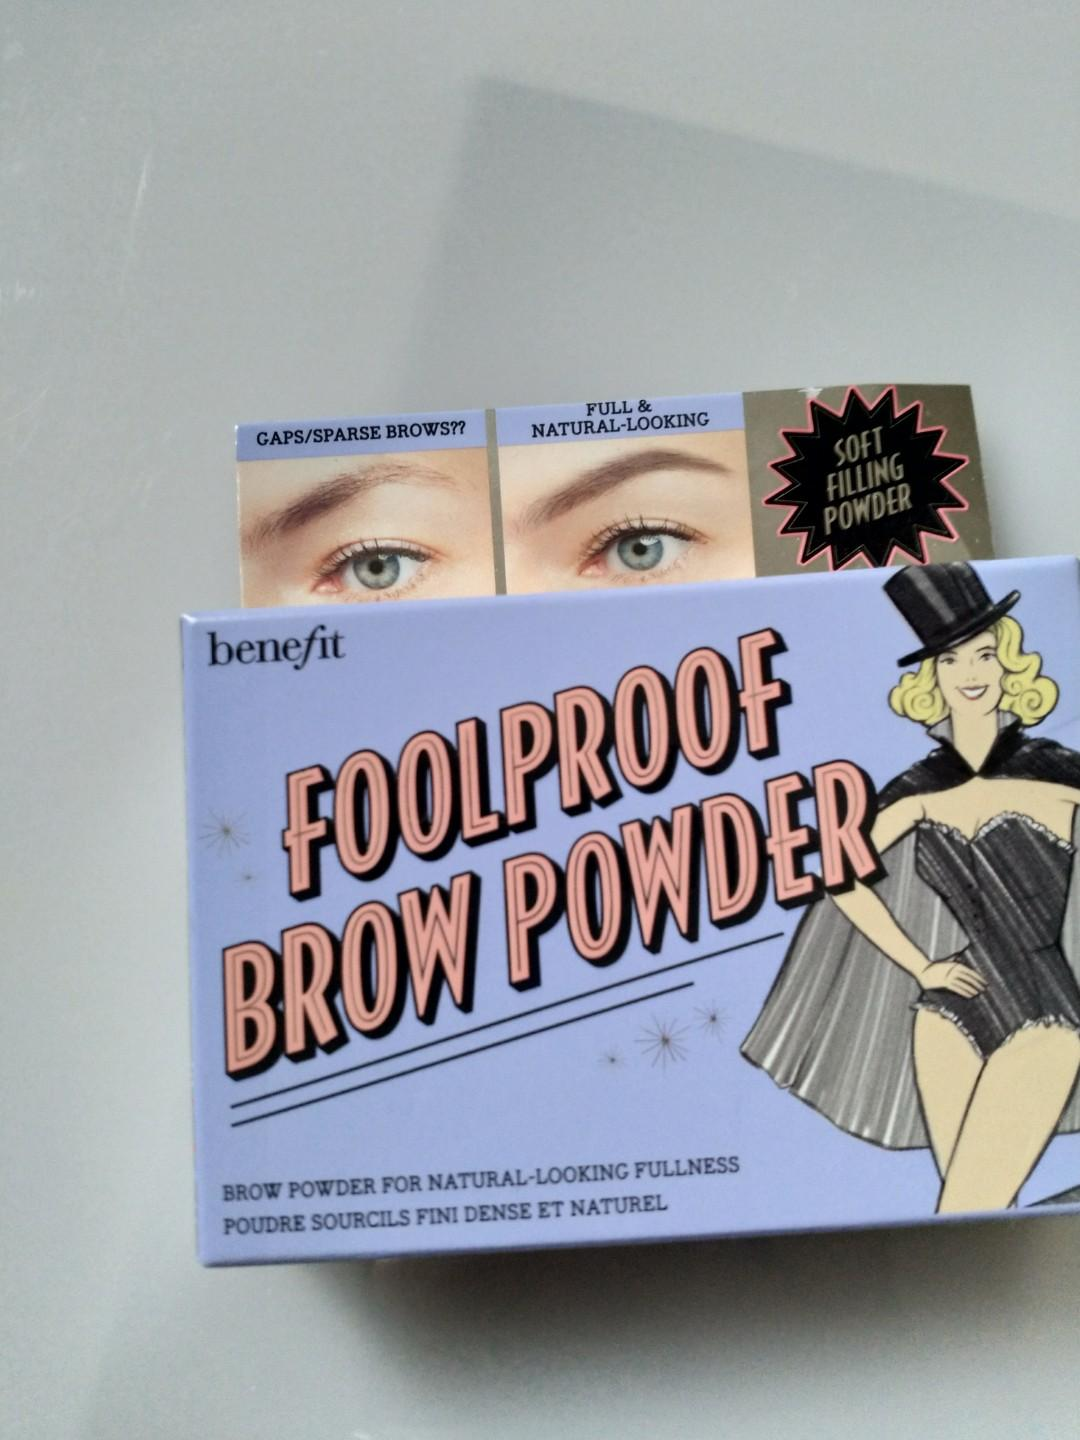 Brow powder and gel